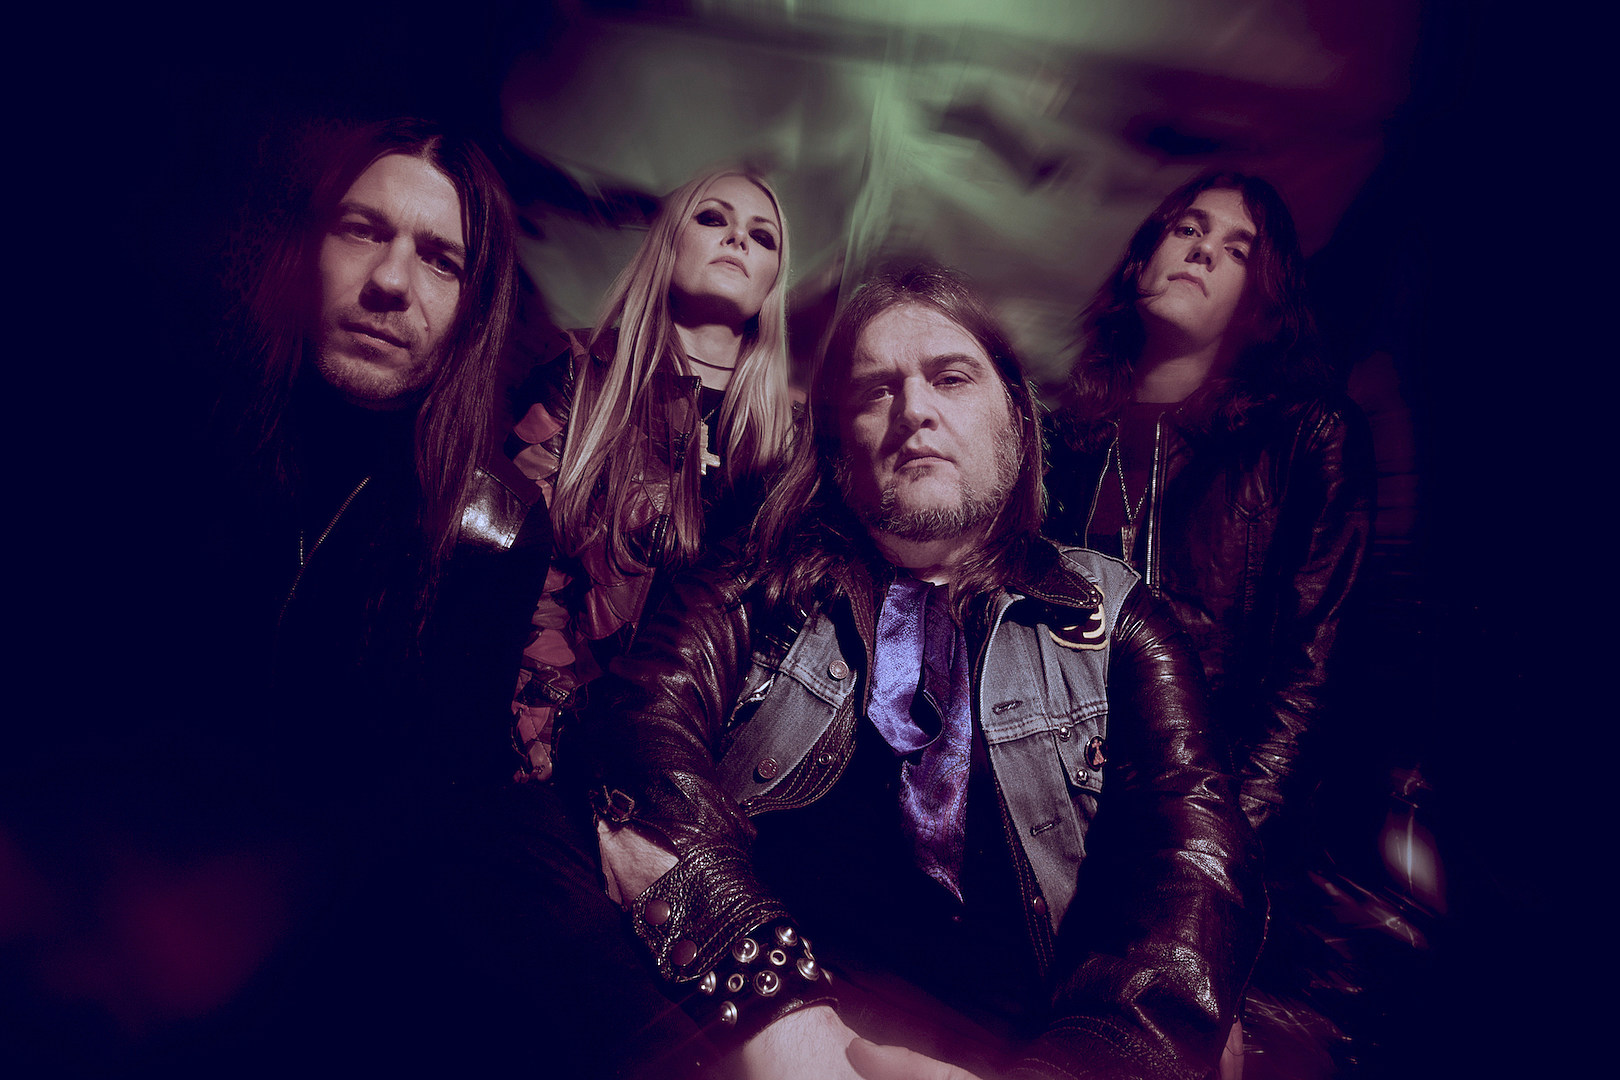 Electric Wizard's Jus Osborn on Returning to 'Real' Rock Roots, Why Genre Labeling Is 'Killing' Heavy Music